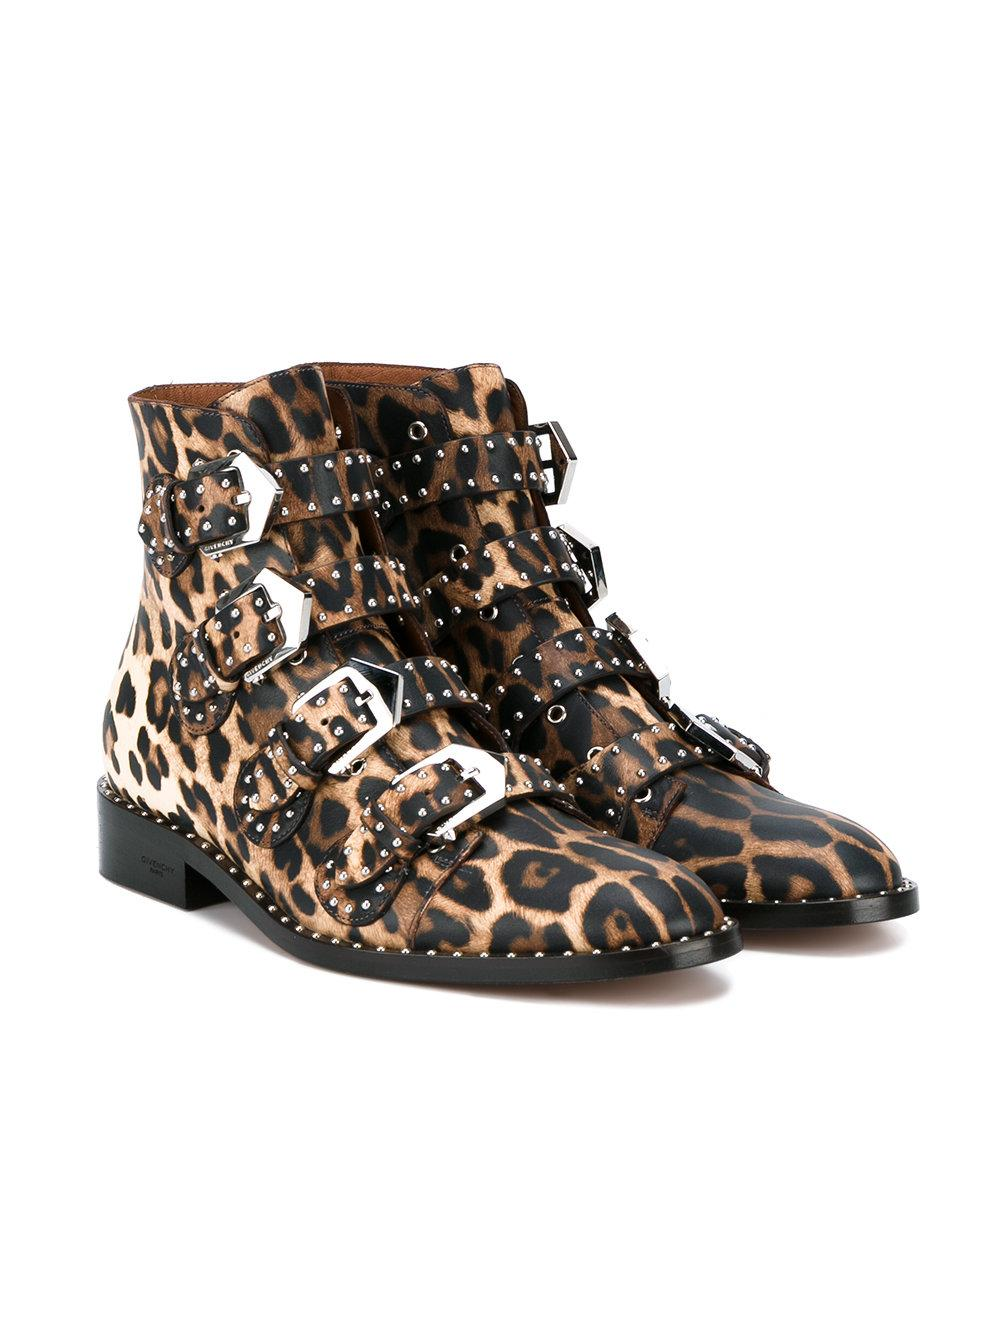 Givenchy Leather Leopard Print Boots In Black Lyst